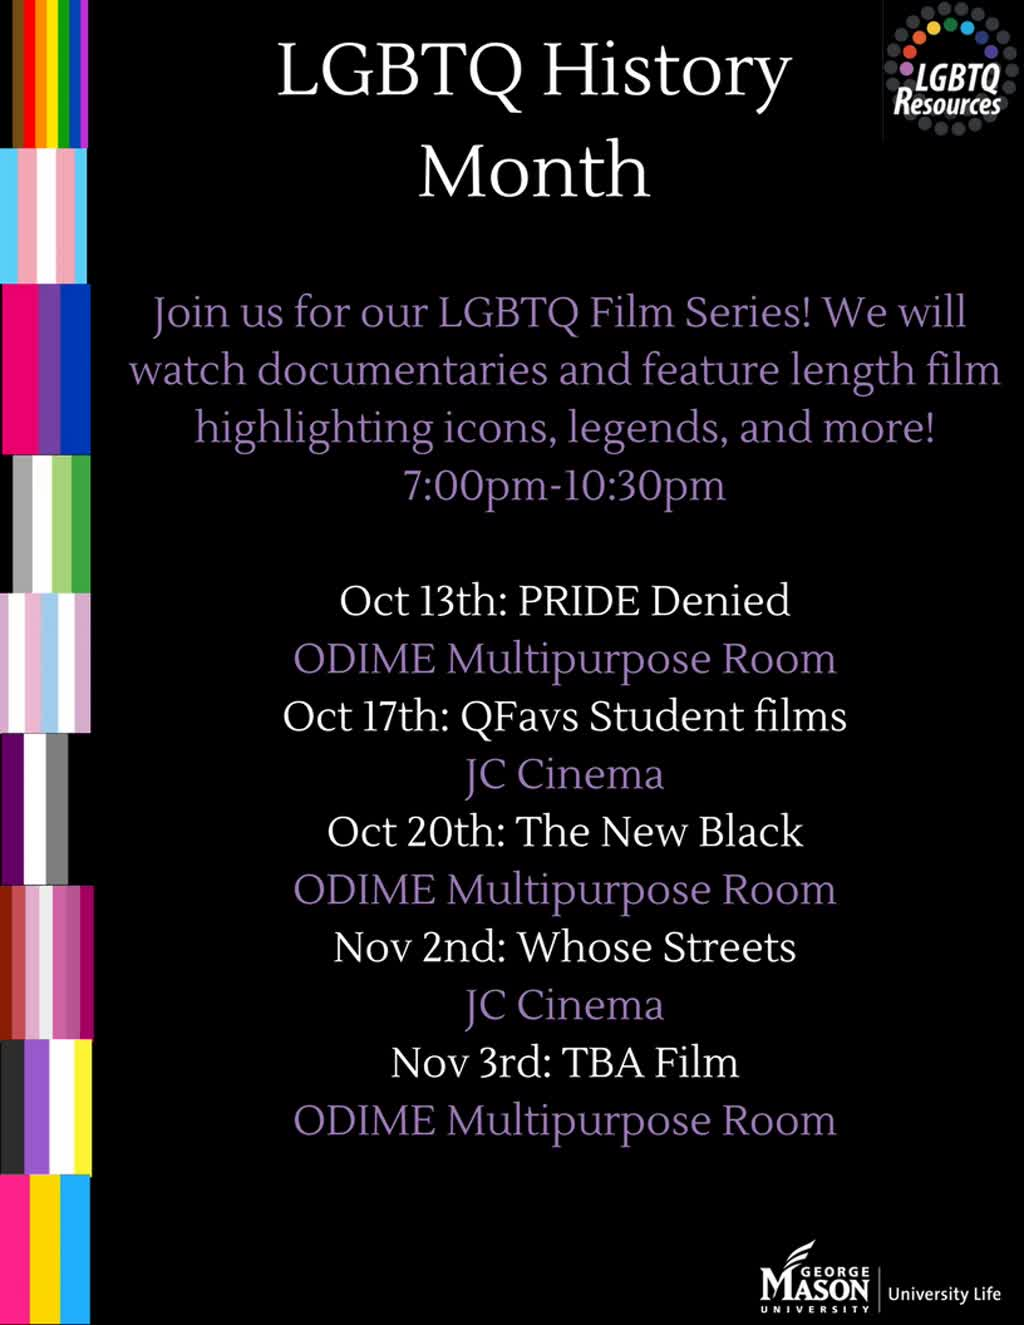 Information regarding LGBTQ Film Series is as follows Create Your Own Tags: is #LGBTQ #LGBTQHistoryMonth #JanetMock and Start date (when you would like your content to be posted) is October 02 2017 and End Date  (when you would like your content to be removed from the screens) is November 03 2017 and File is Browse and Email is fbaez@masonlive.gmu.edu and Name is Felicia Baez and File Name is LGBTQ-History-Month_comp.jpg and Name of Ad/Event is LGBTQ Film Series and Group Name is LGBTQ Resources and Affiliation is Mason Department and Panel for your ad to be displayed is Side and